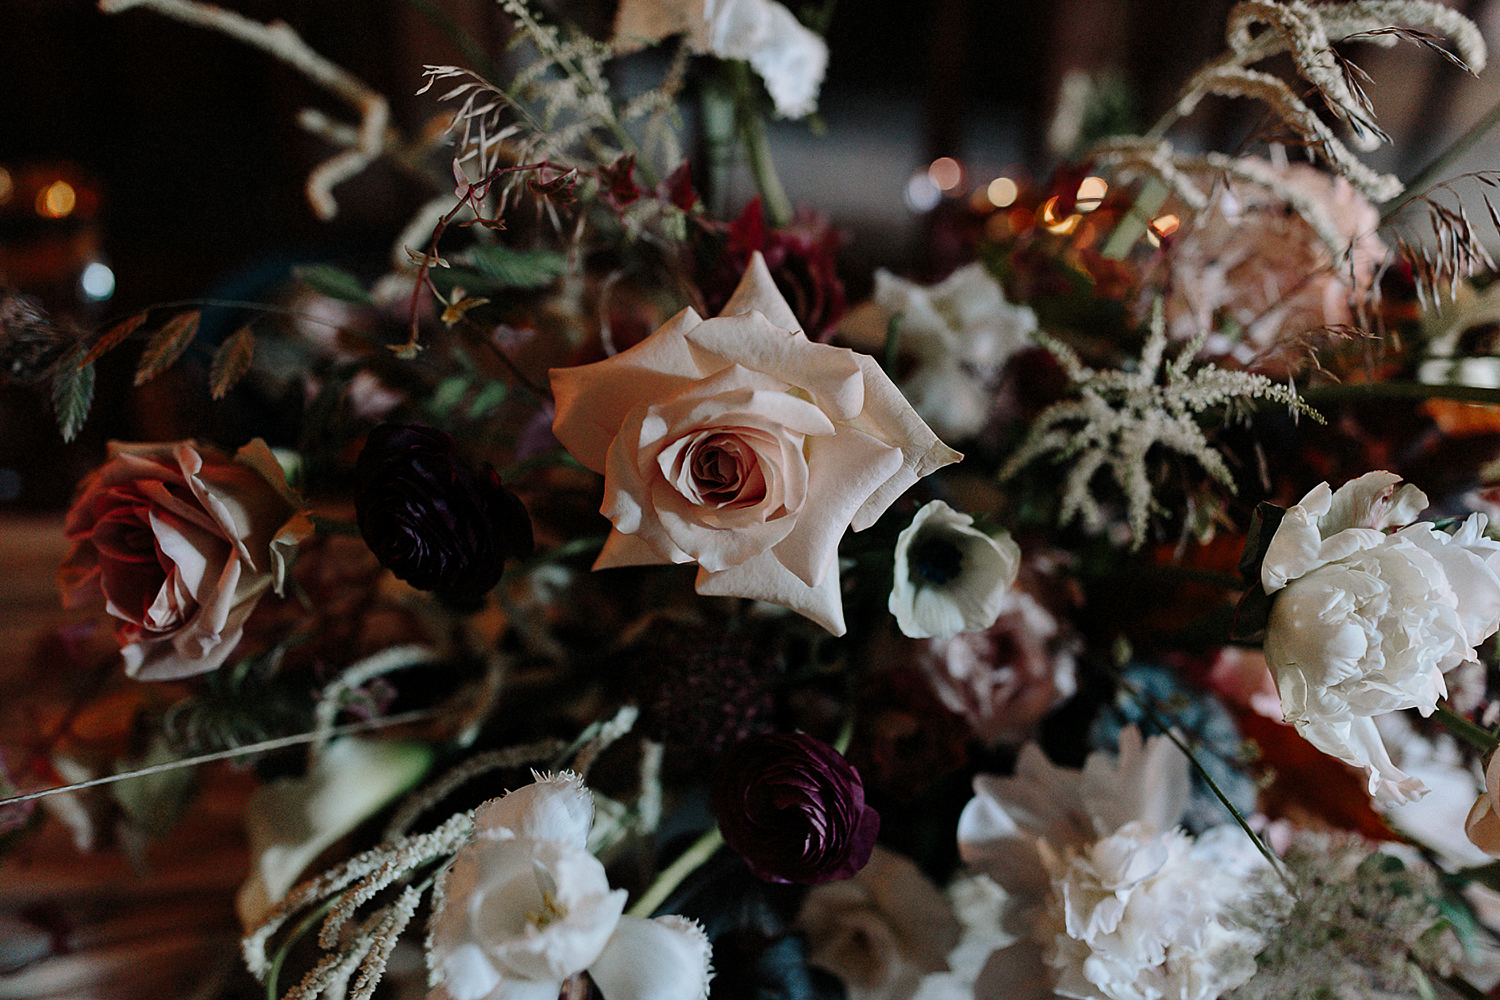 ryanne-hollies-photography-campbell-house-stylized-shoot-dining-room-vintage-inspired-rustic-bridal-tablescape-florals-candlelit-details-fine-art-moody-dark-wedding-hunt-and-gather.jpg